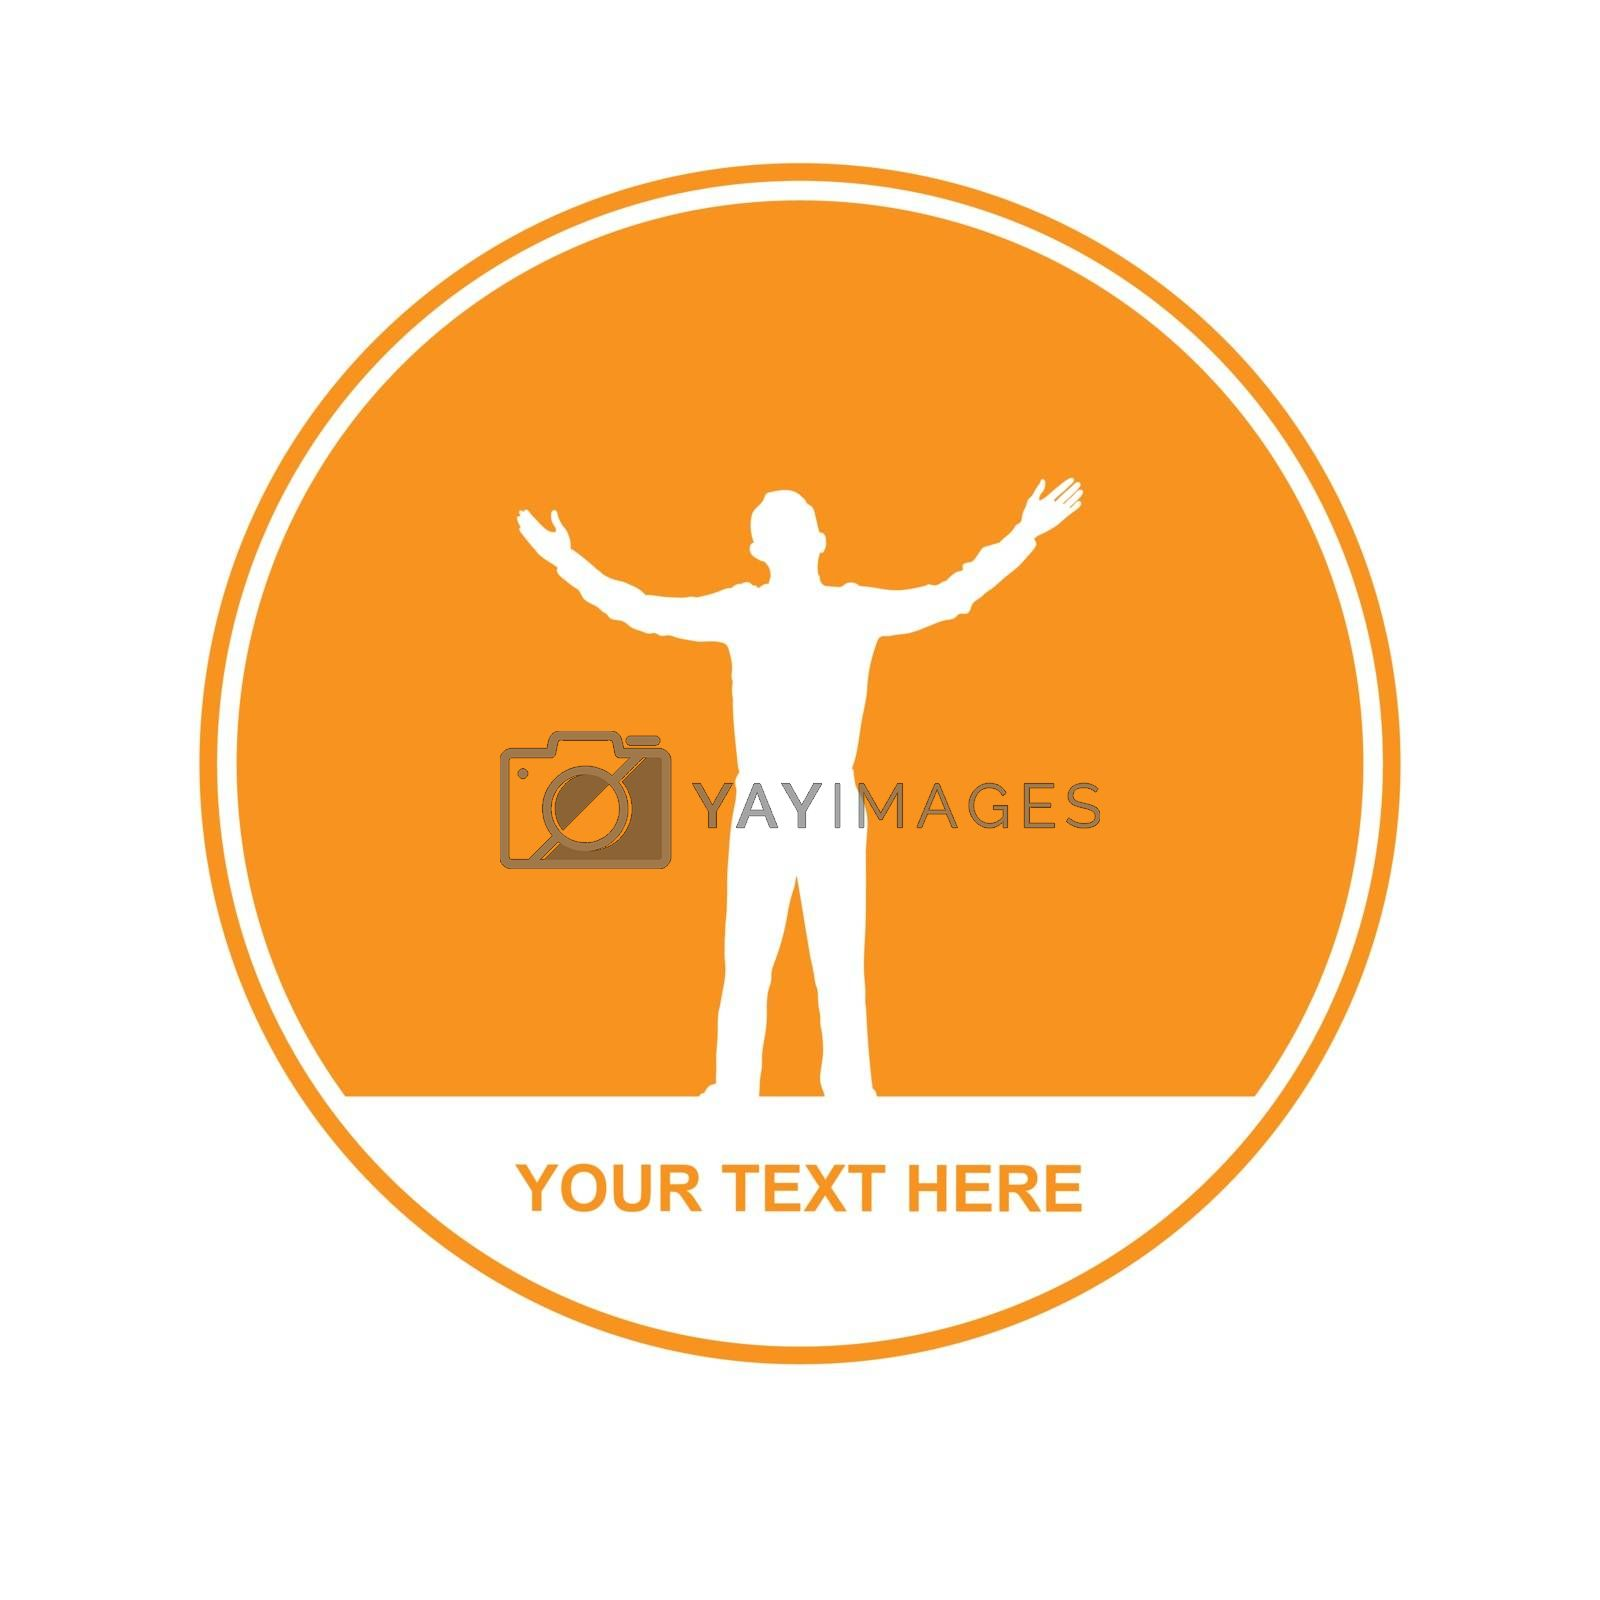 logo of a man with his hands up, simple design